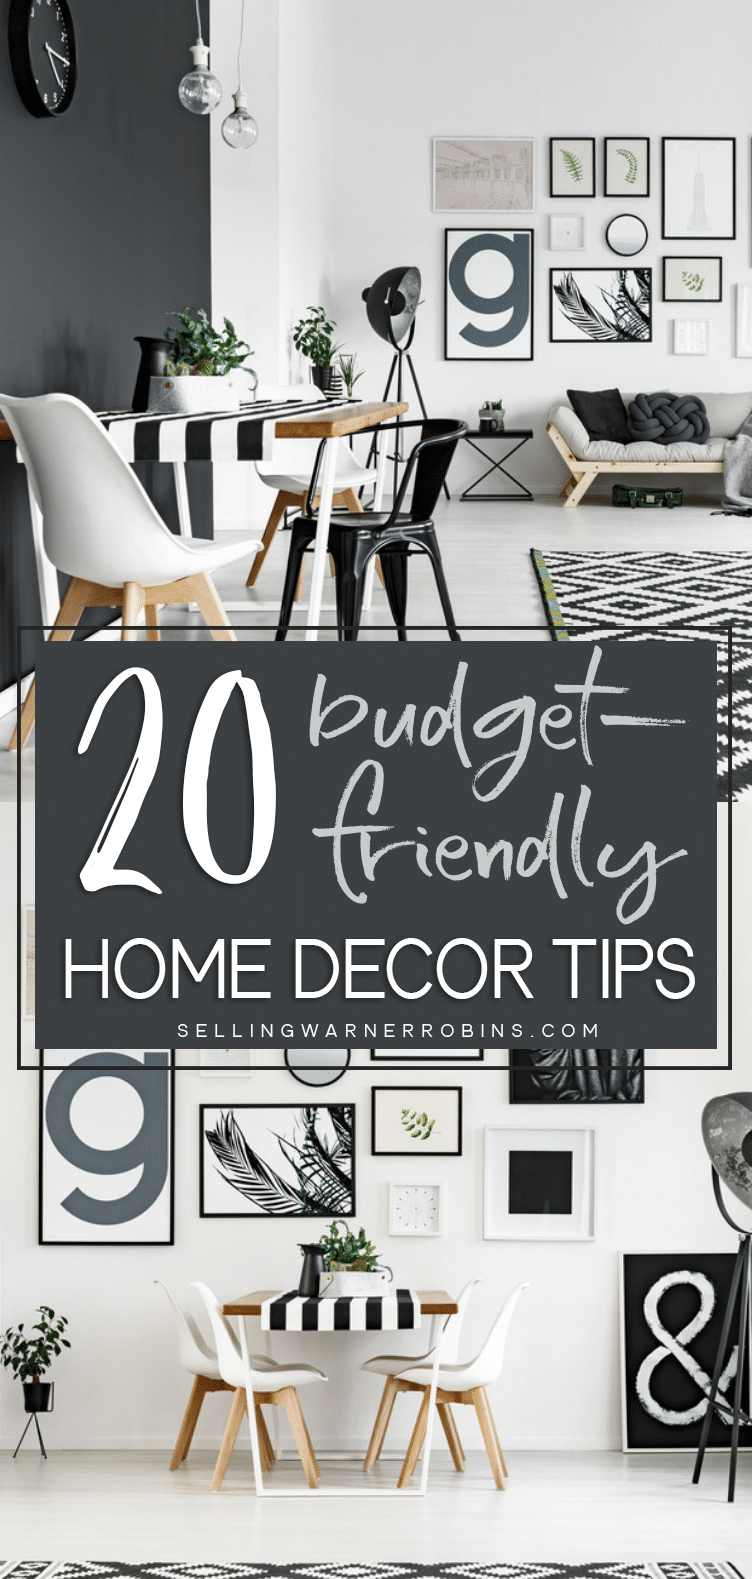 Tip 1 Find Free Materials Ways To Save Money When Decorating Your Home